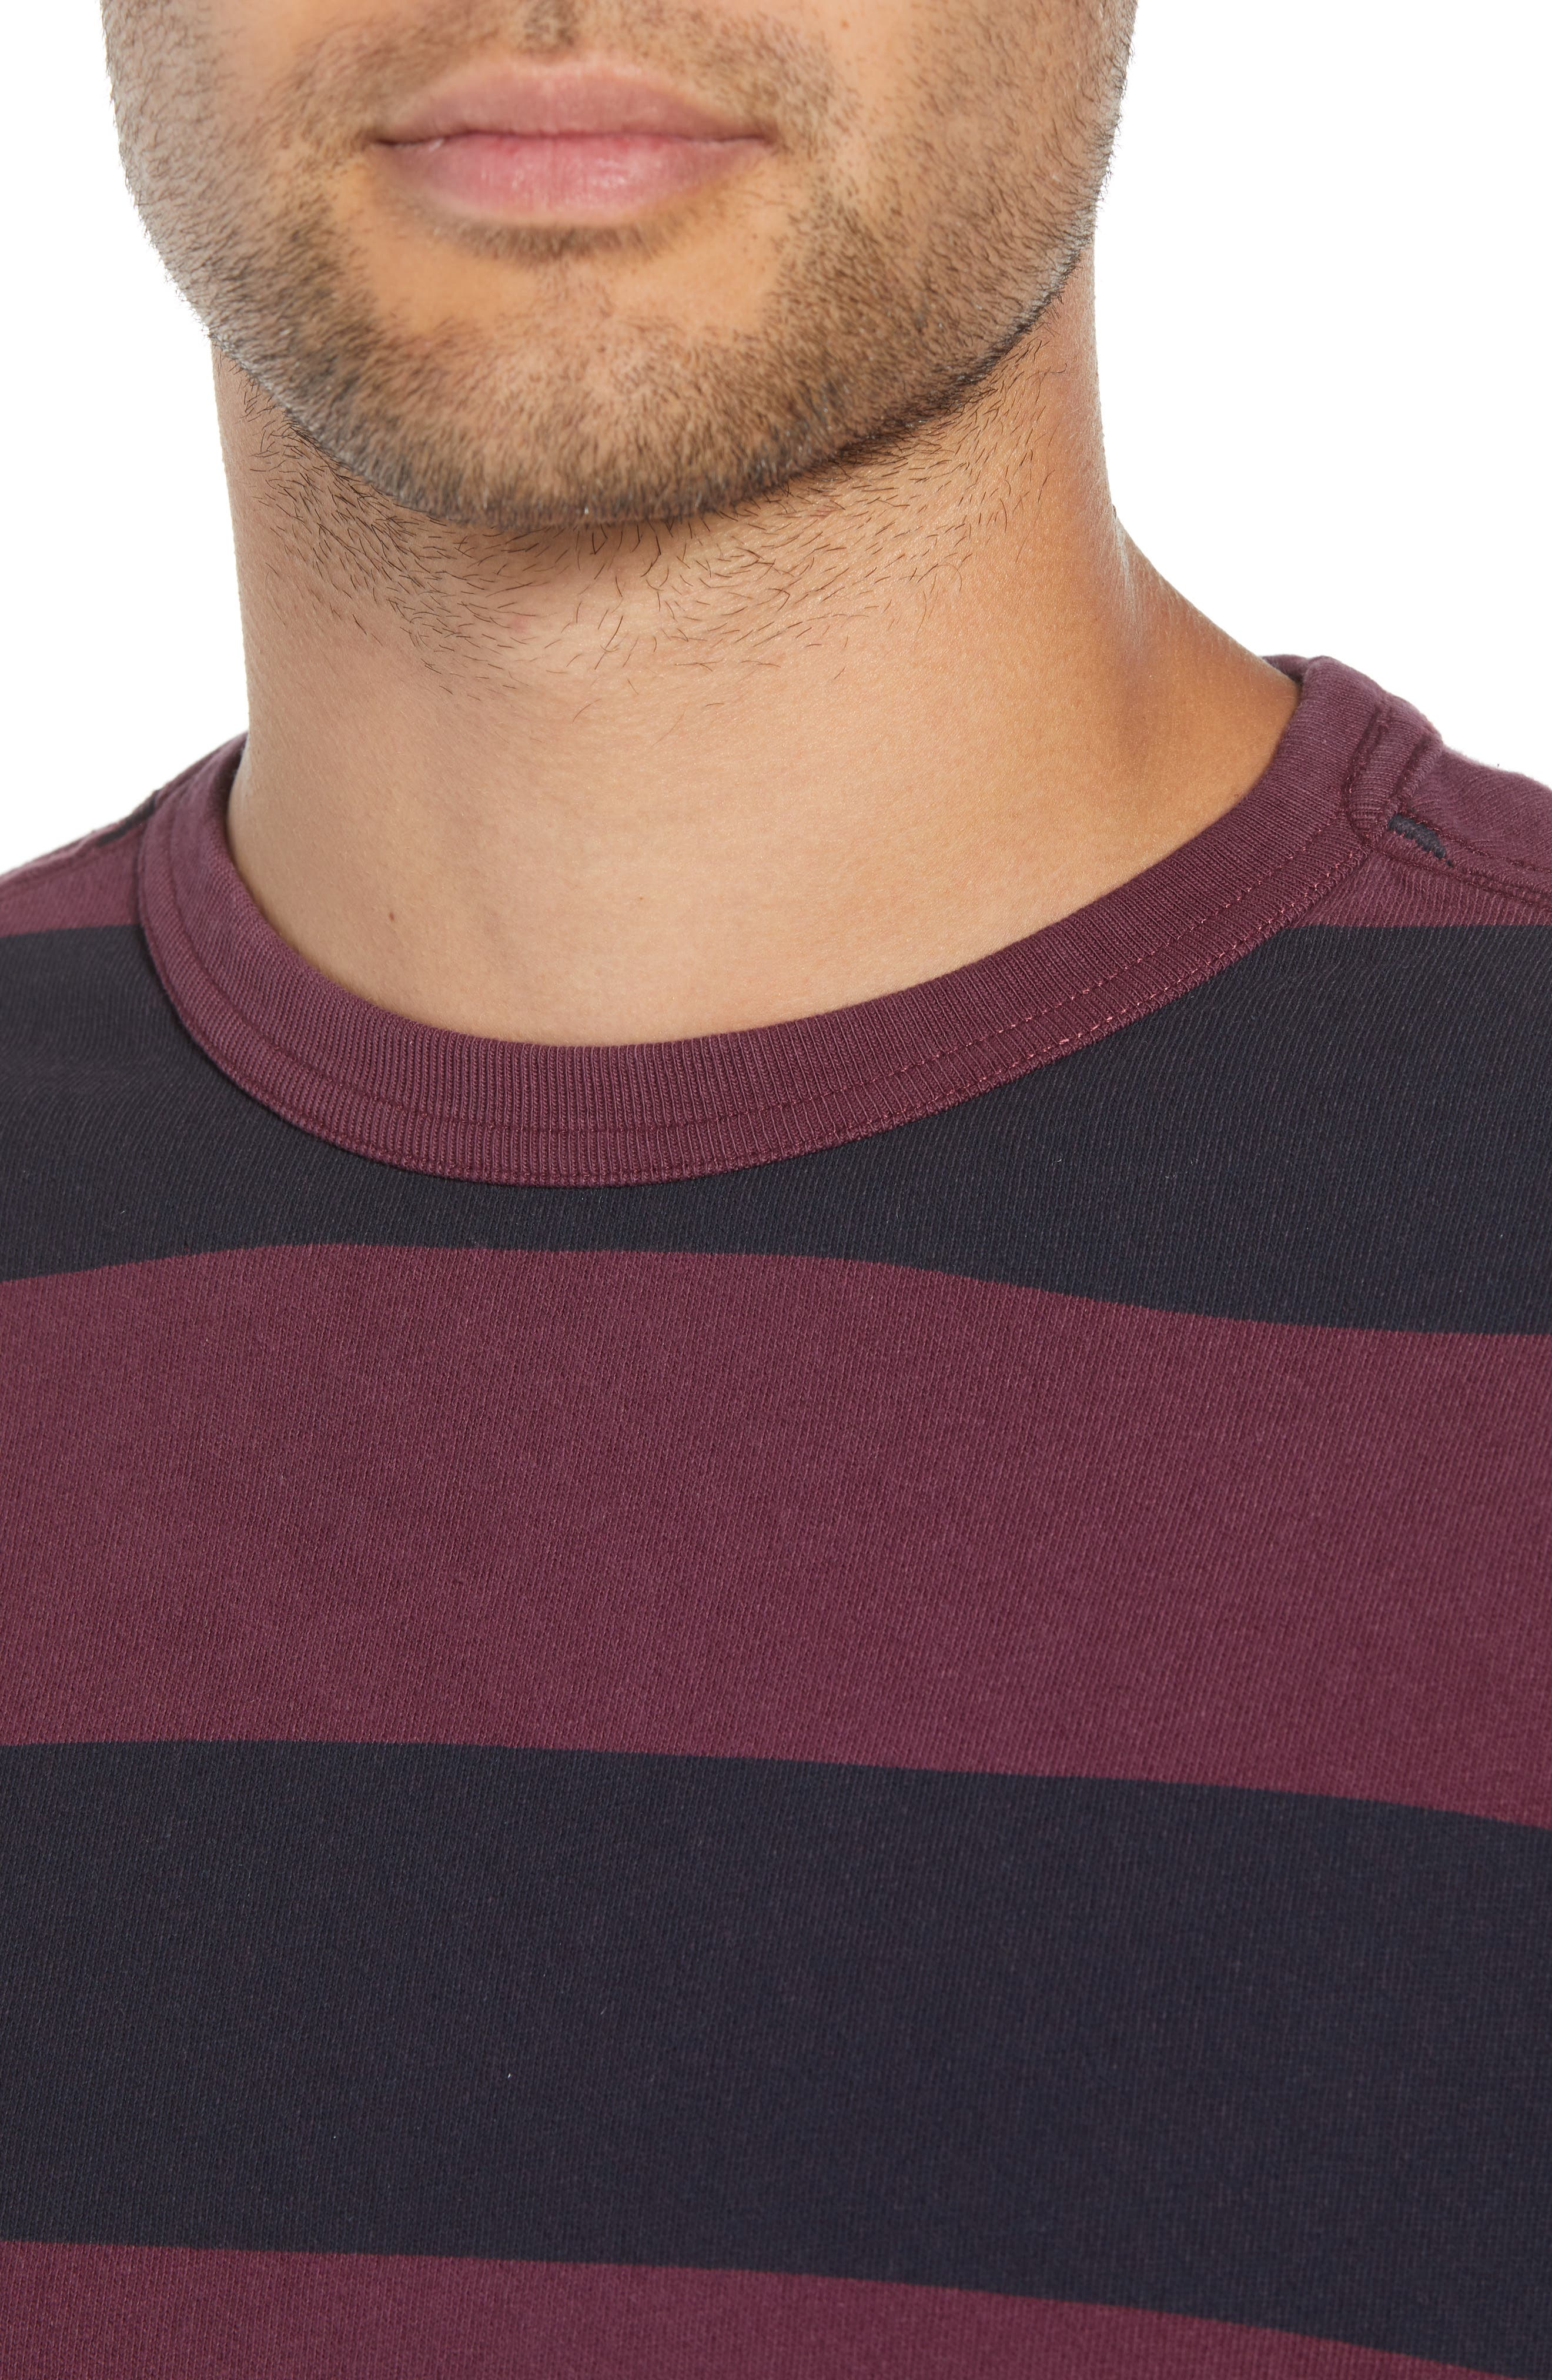 Stripe T-Shirt,                             Alternate thumbnail 4, color,                             500